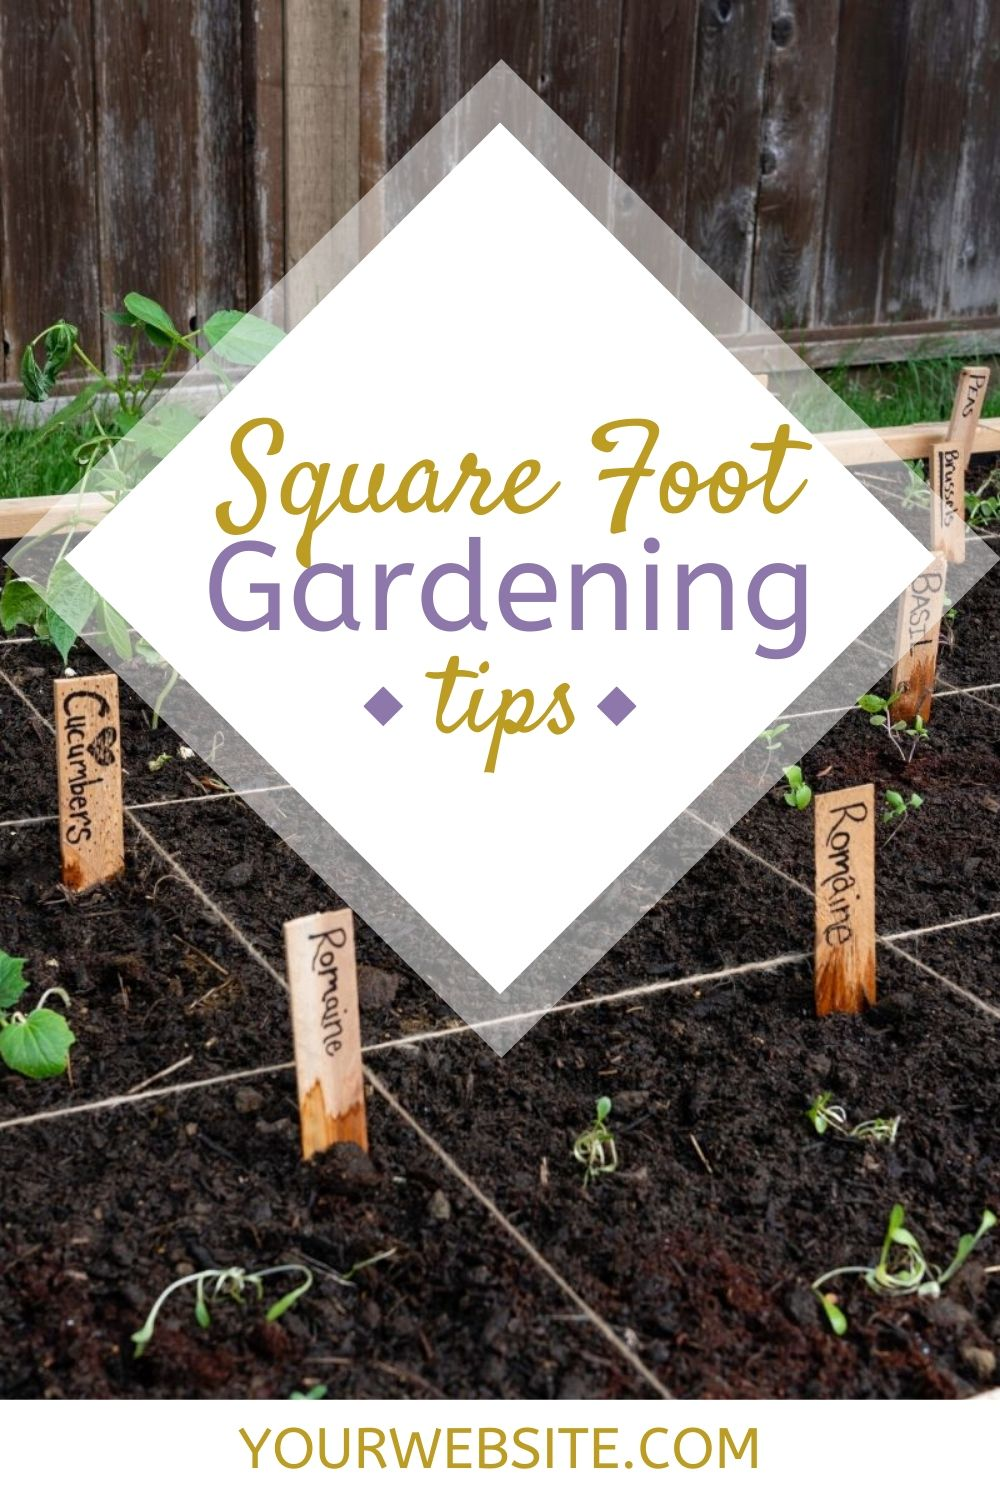 Start growing your own food in your own square foot garden. Plan out your square foot garden with these gardening tips plus download the free garden planner. via @homebyjenn